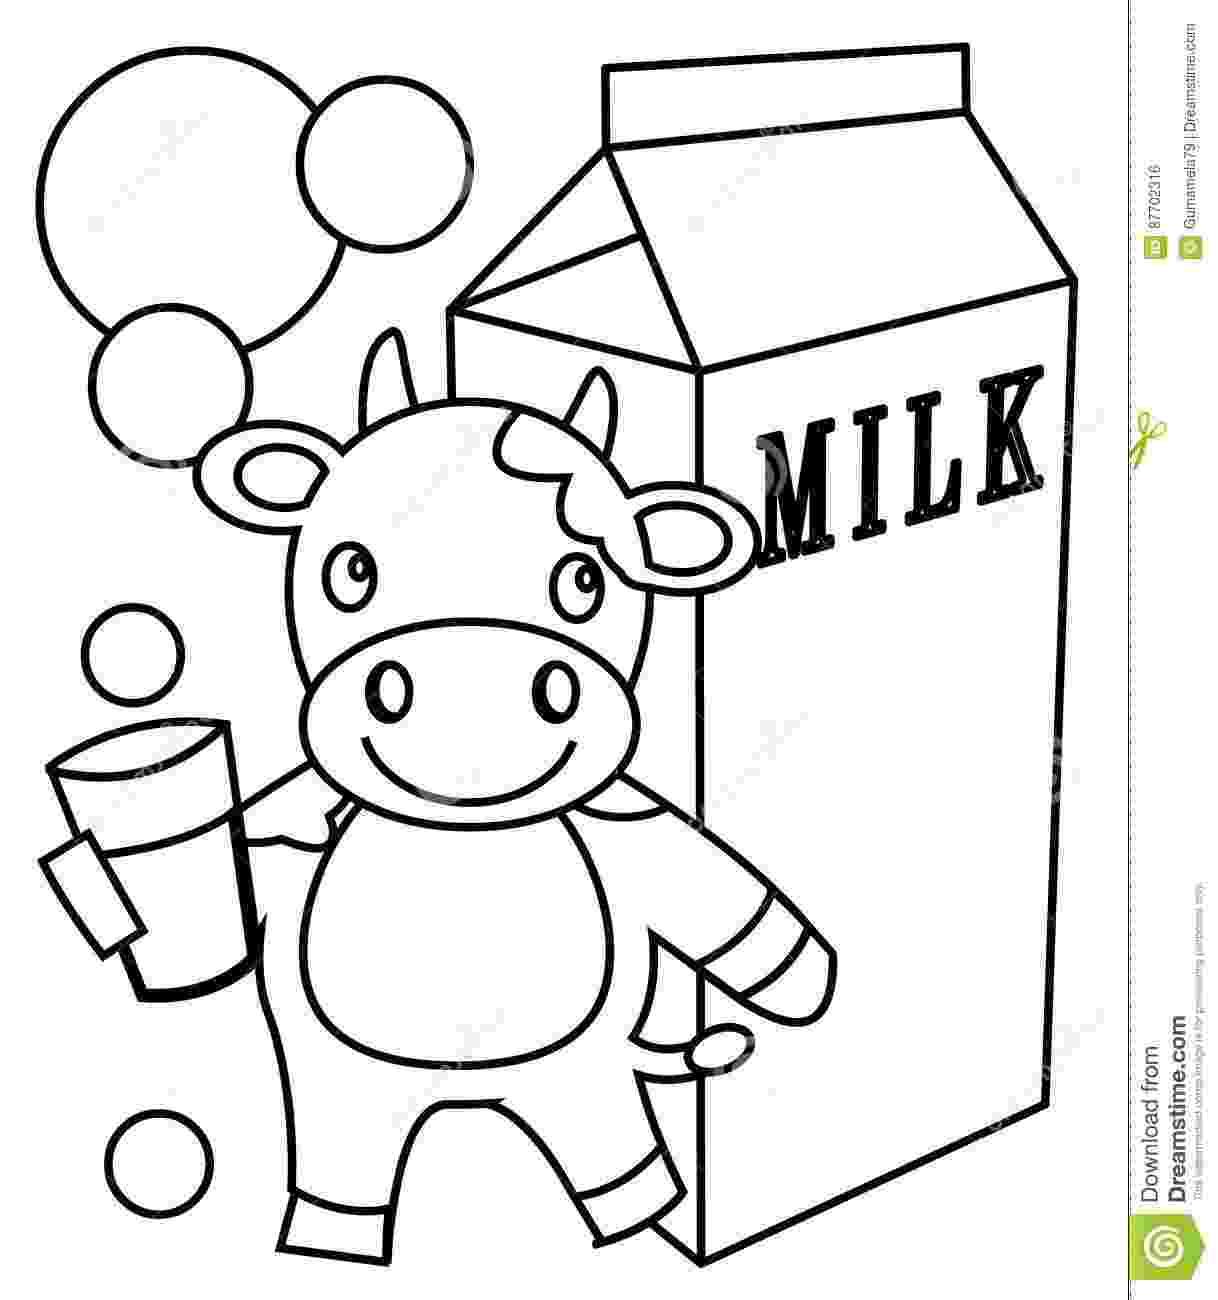 milk coloring pages milk coloring page stock illustration illustration of pages milk coloring